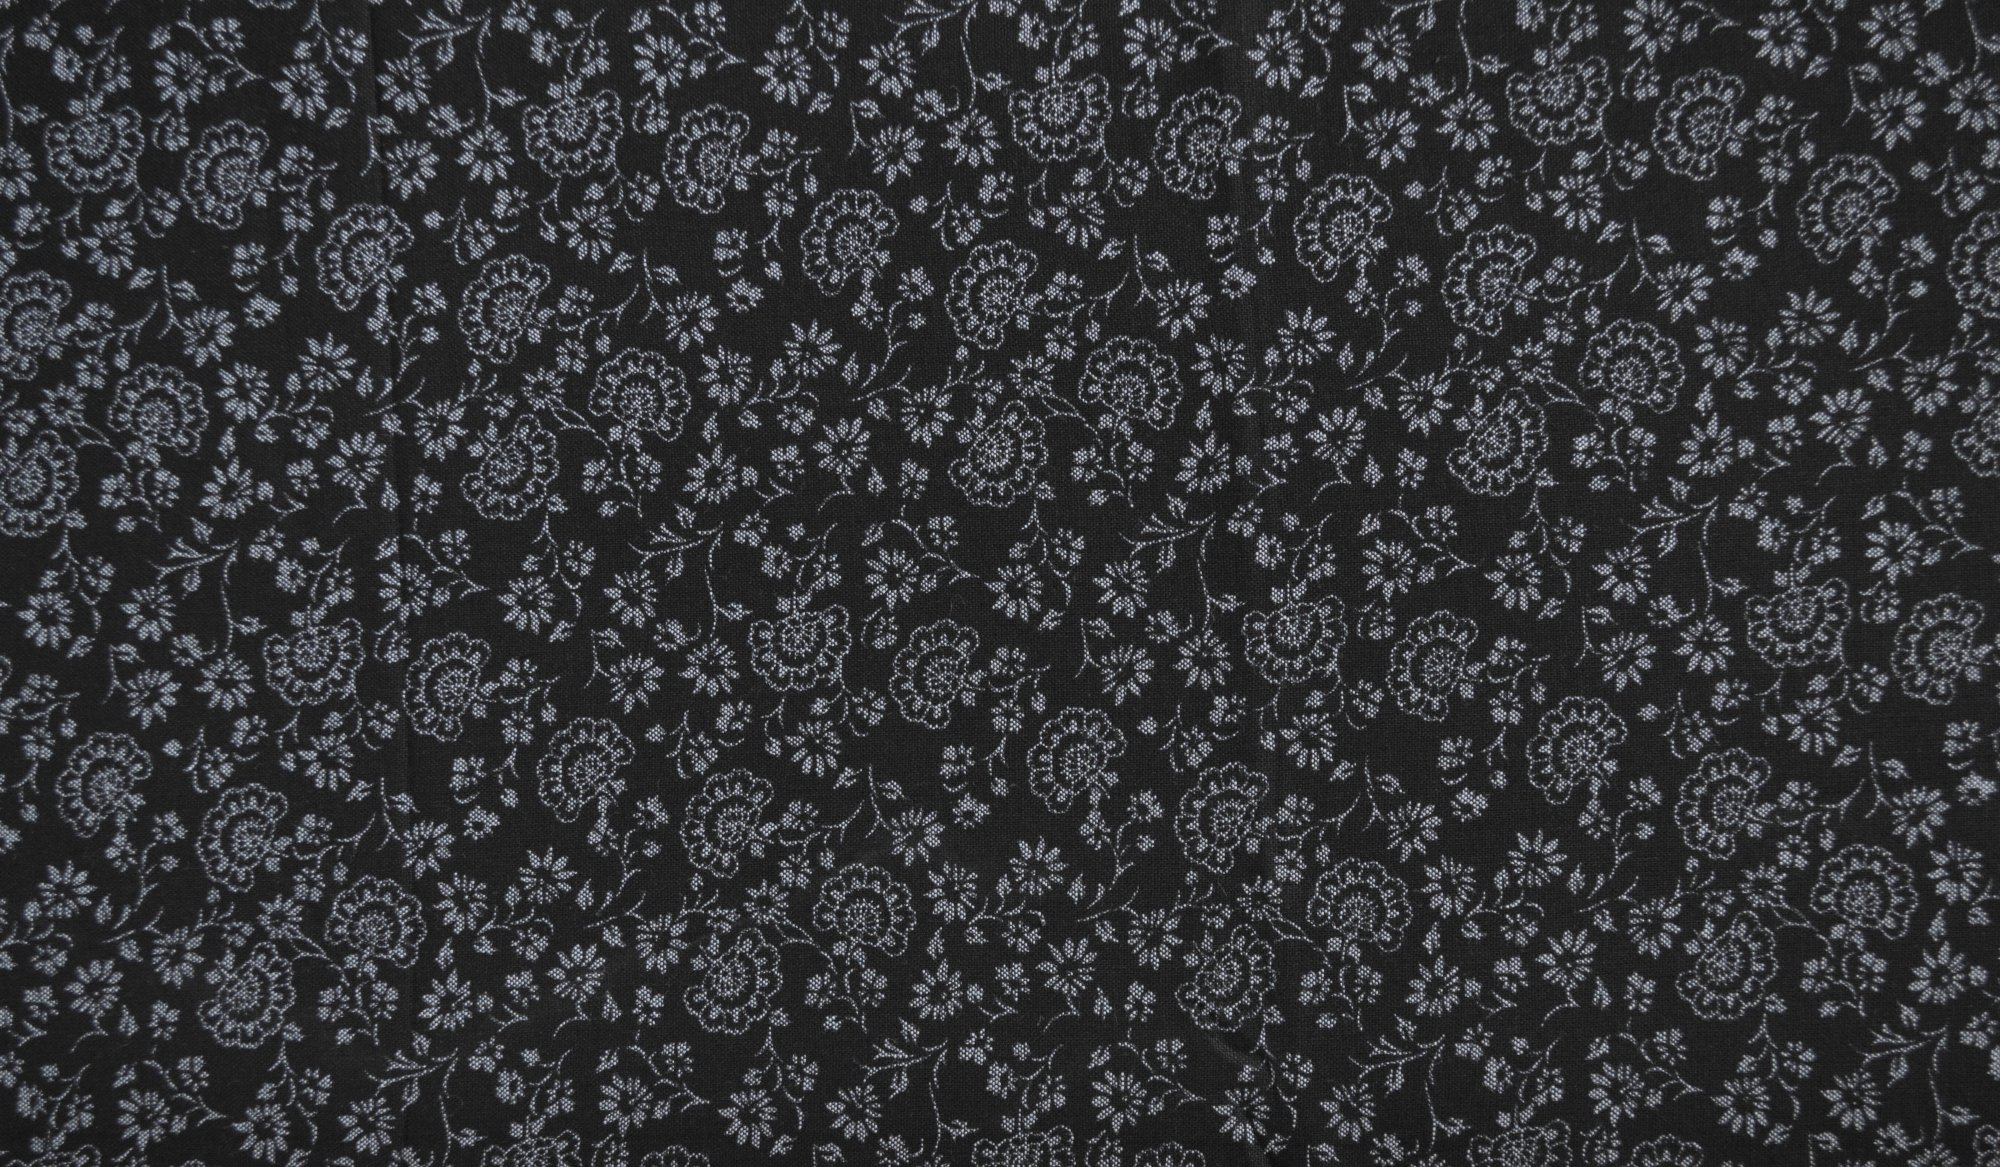 Chambray - Black Floral